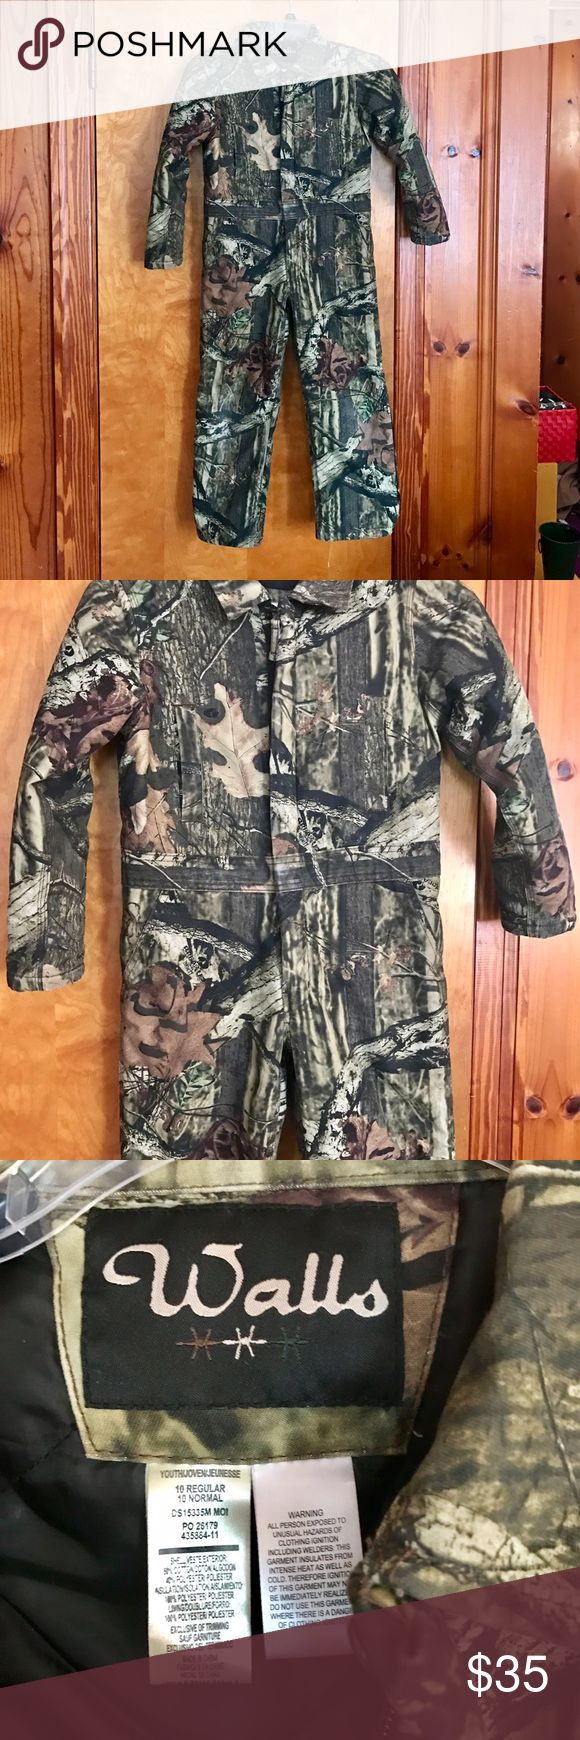 Boy's Walls Zero Zone Insulated Coveralls-10 Reg. Boy's Walls Zero Zone Insulated Coveralls-10 Reg.  Great for your son to pay in the snow and cold weather to keeping him warm when hunting.  He has only worn this about 4-5 times over the last 2 winters just to go play in the snow for no more that 45 minutes at a time.  They are practically new...                                                                   Please contact me with any questions and I'll respond promptly.  Thank you and…